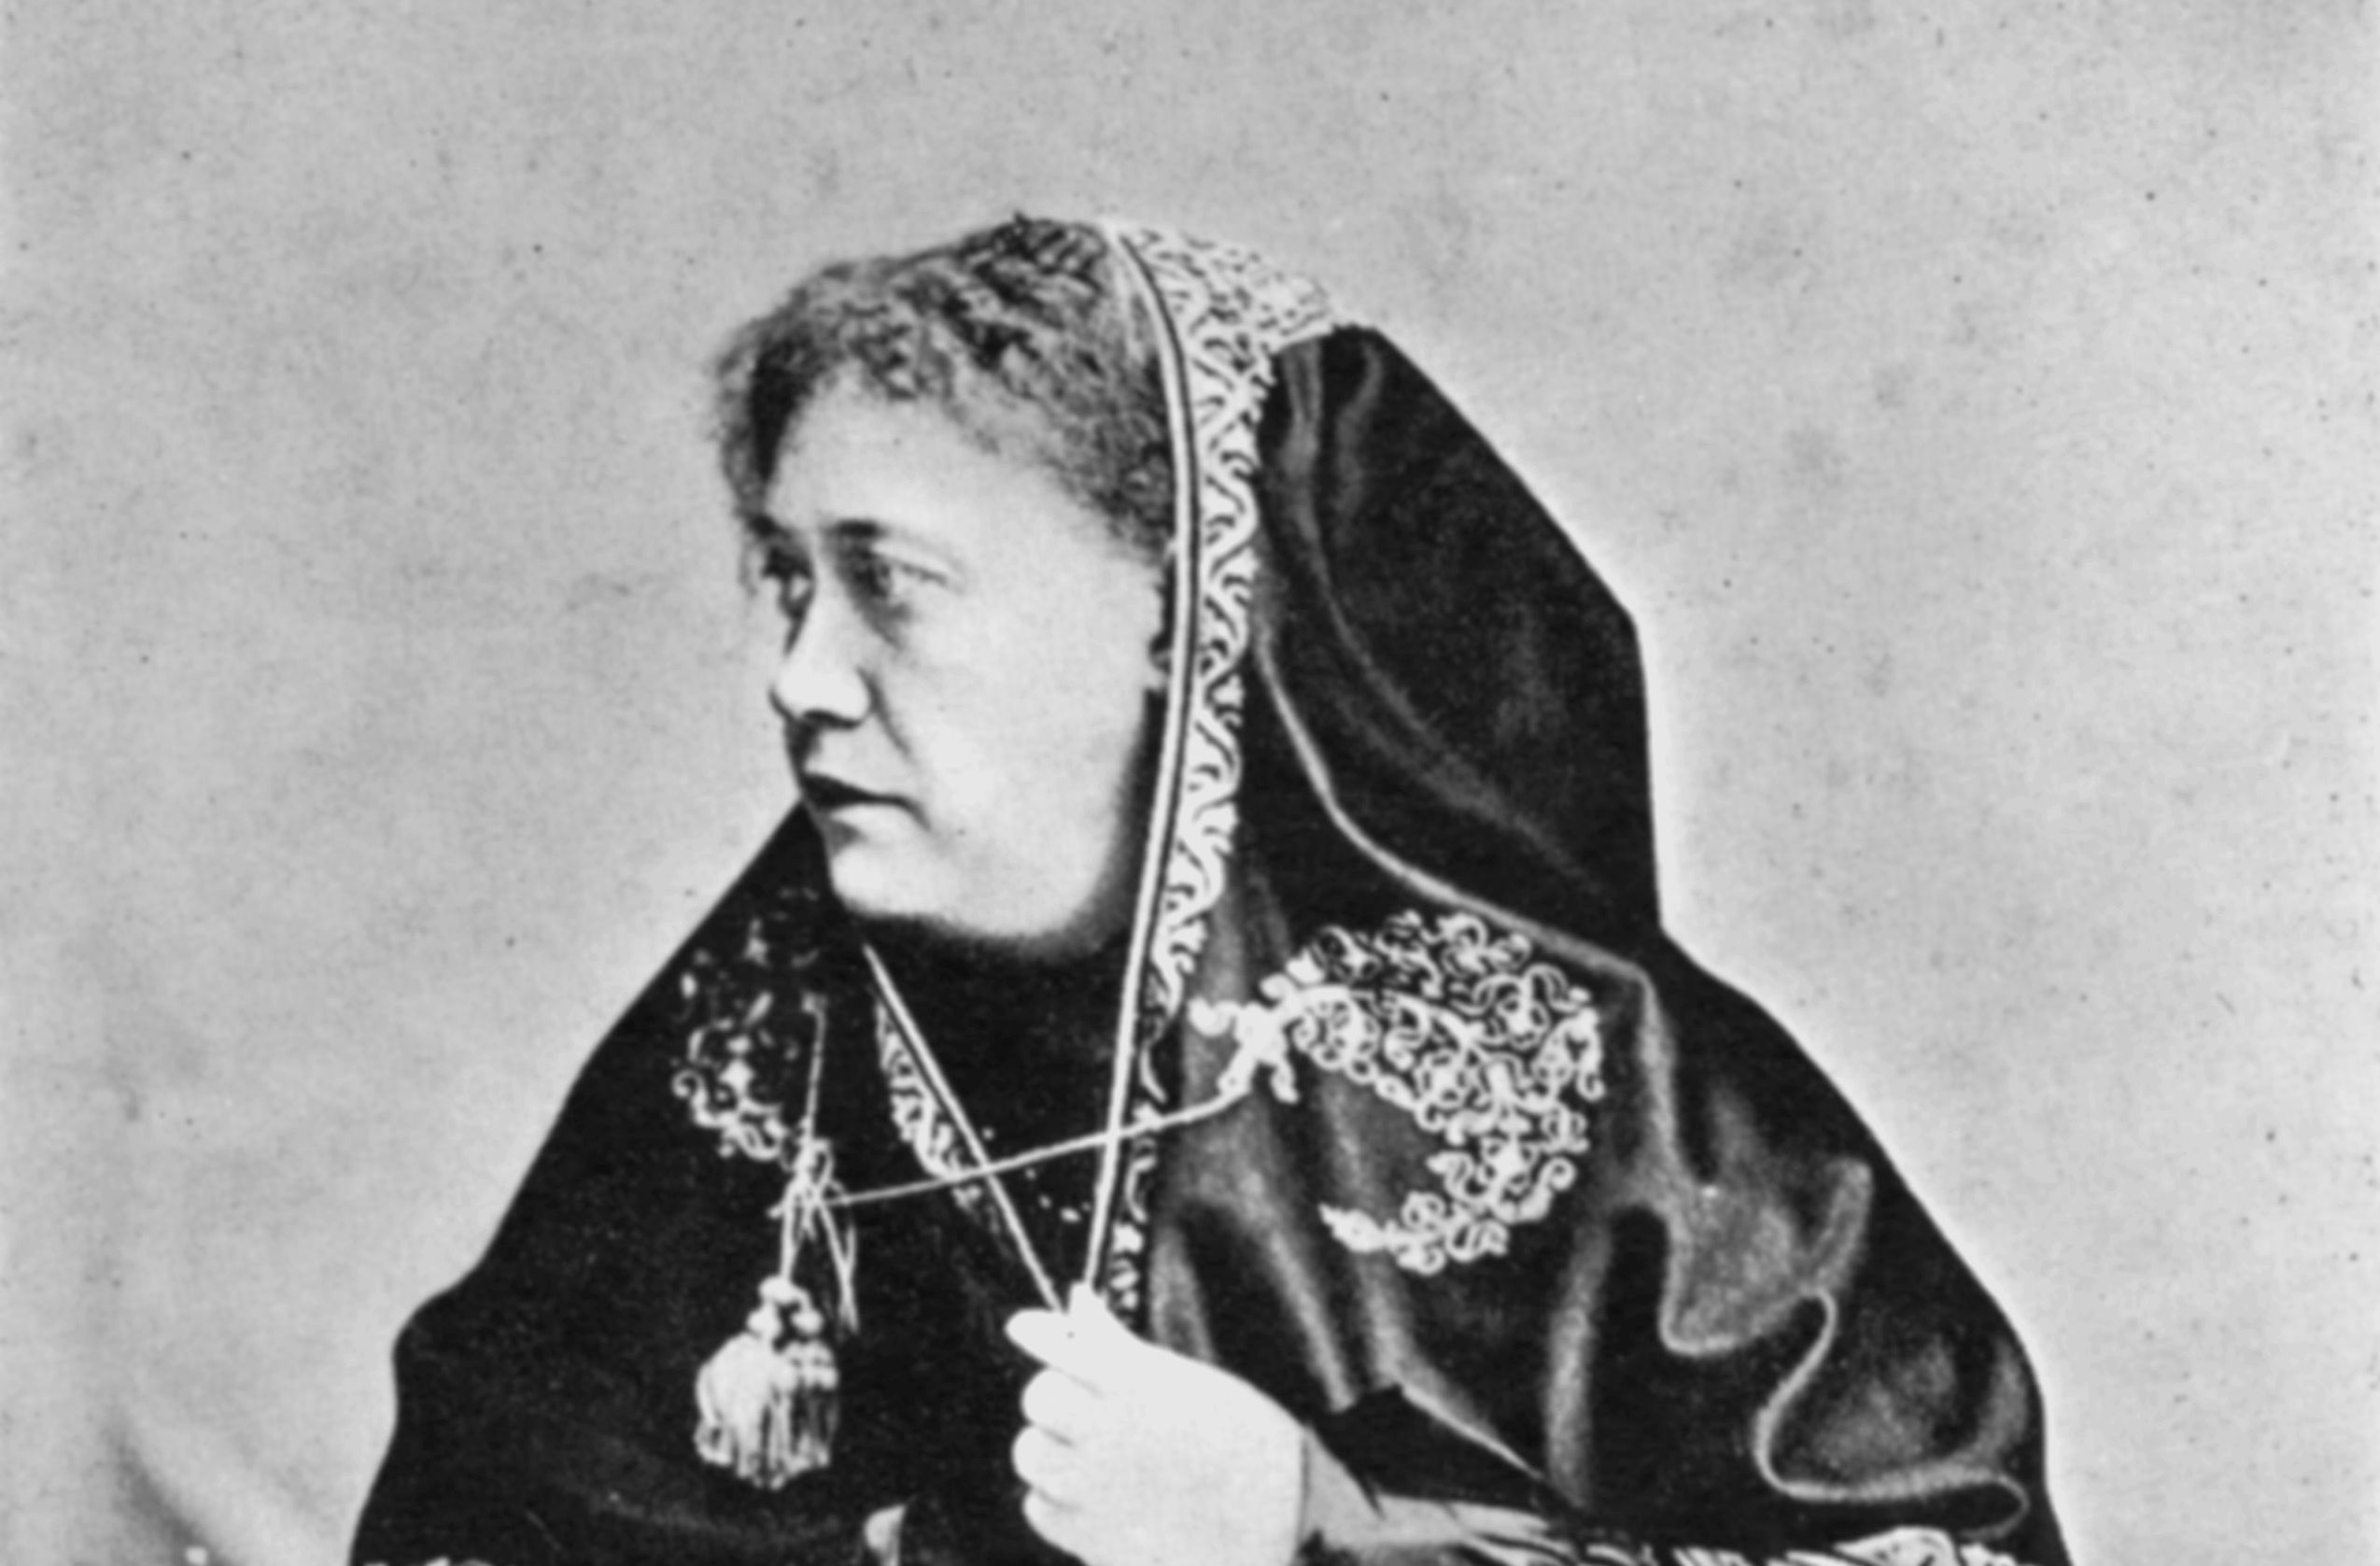 Helena Blavatsky, Occultist and Founder of Theosophy